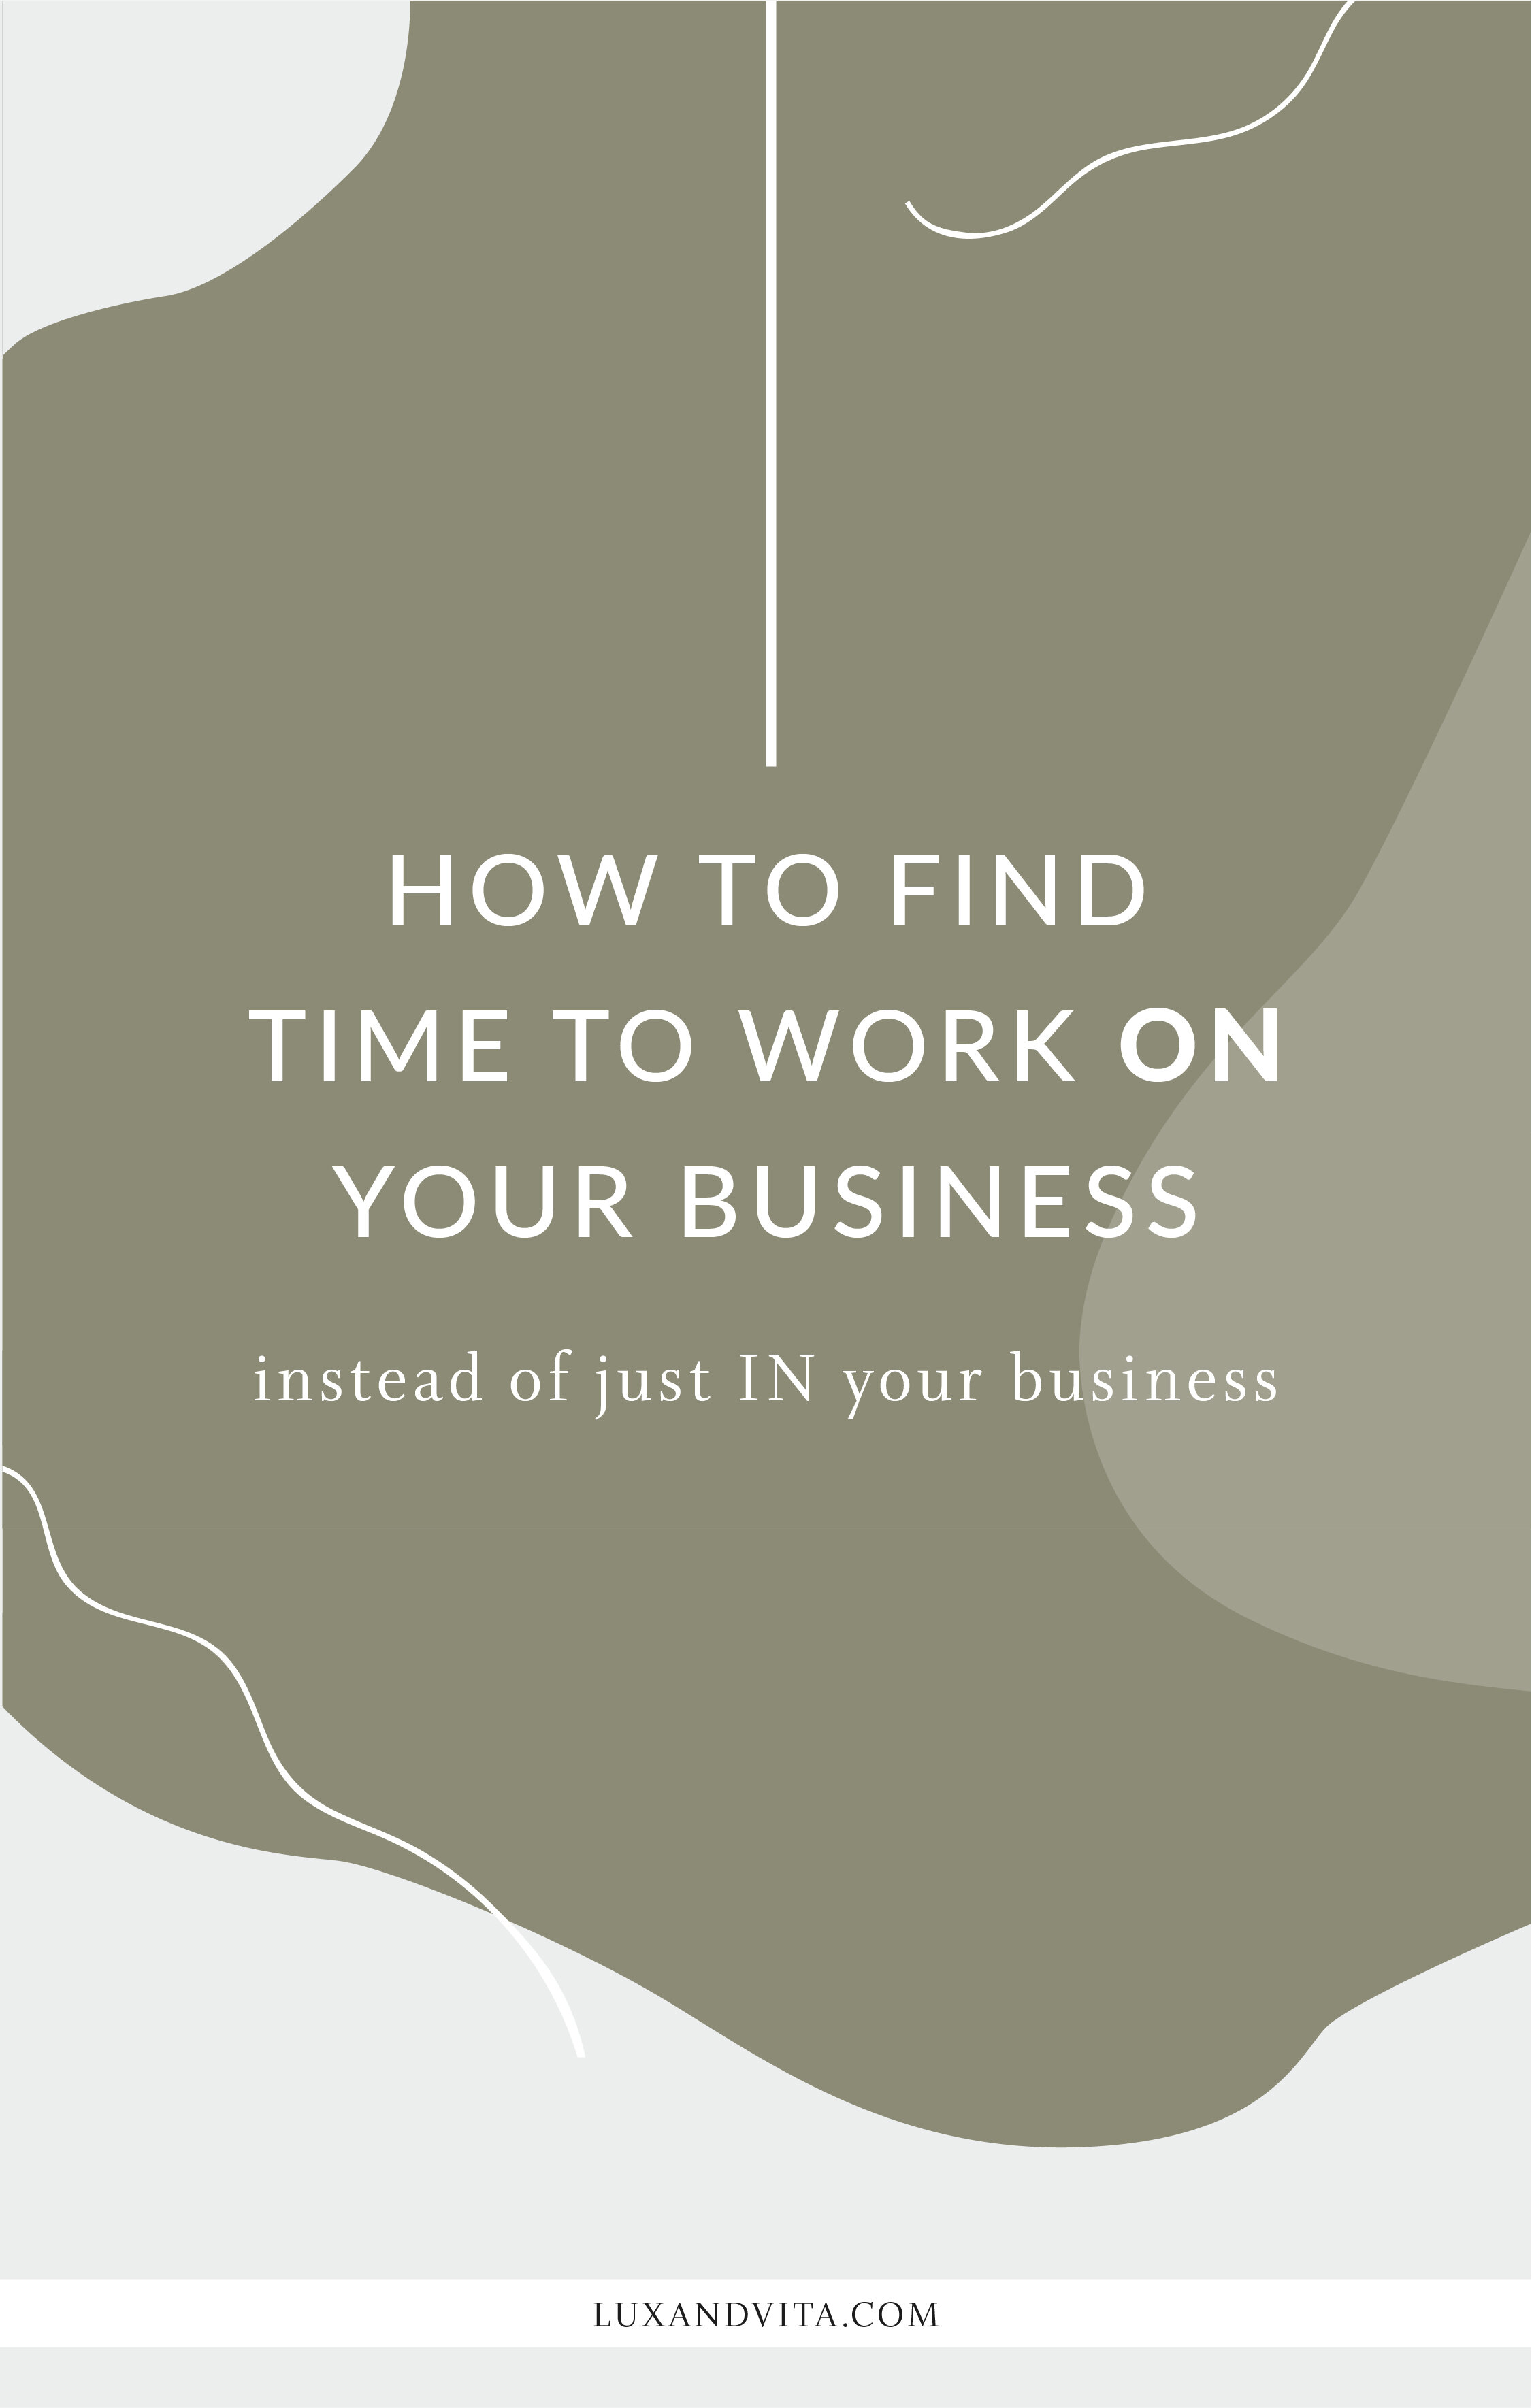 How to find time to work on your business_Pinterest 3.jpg